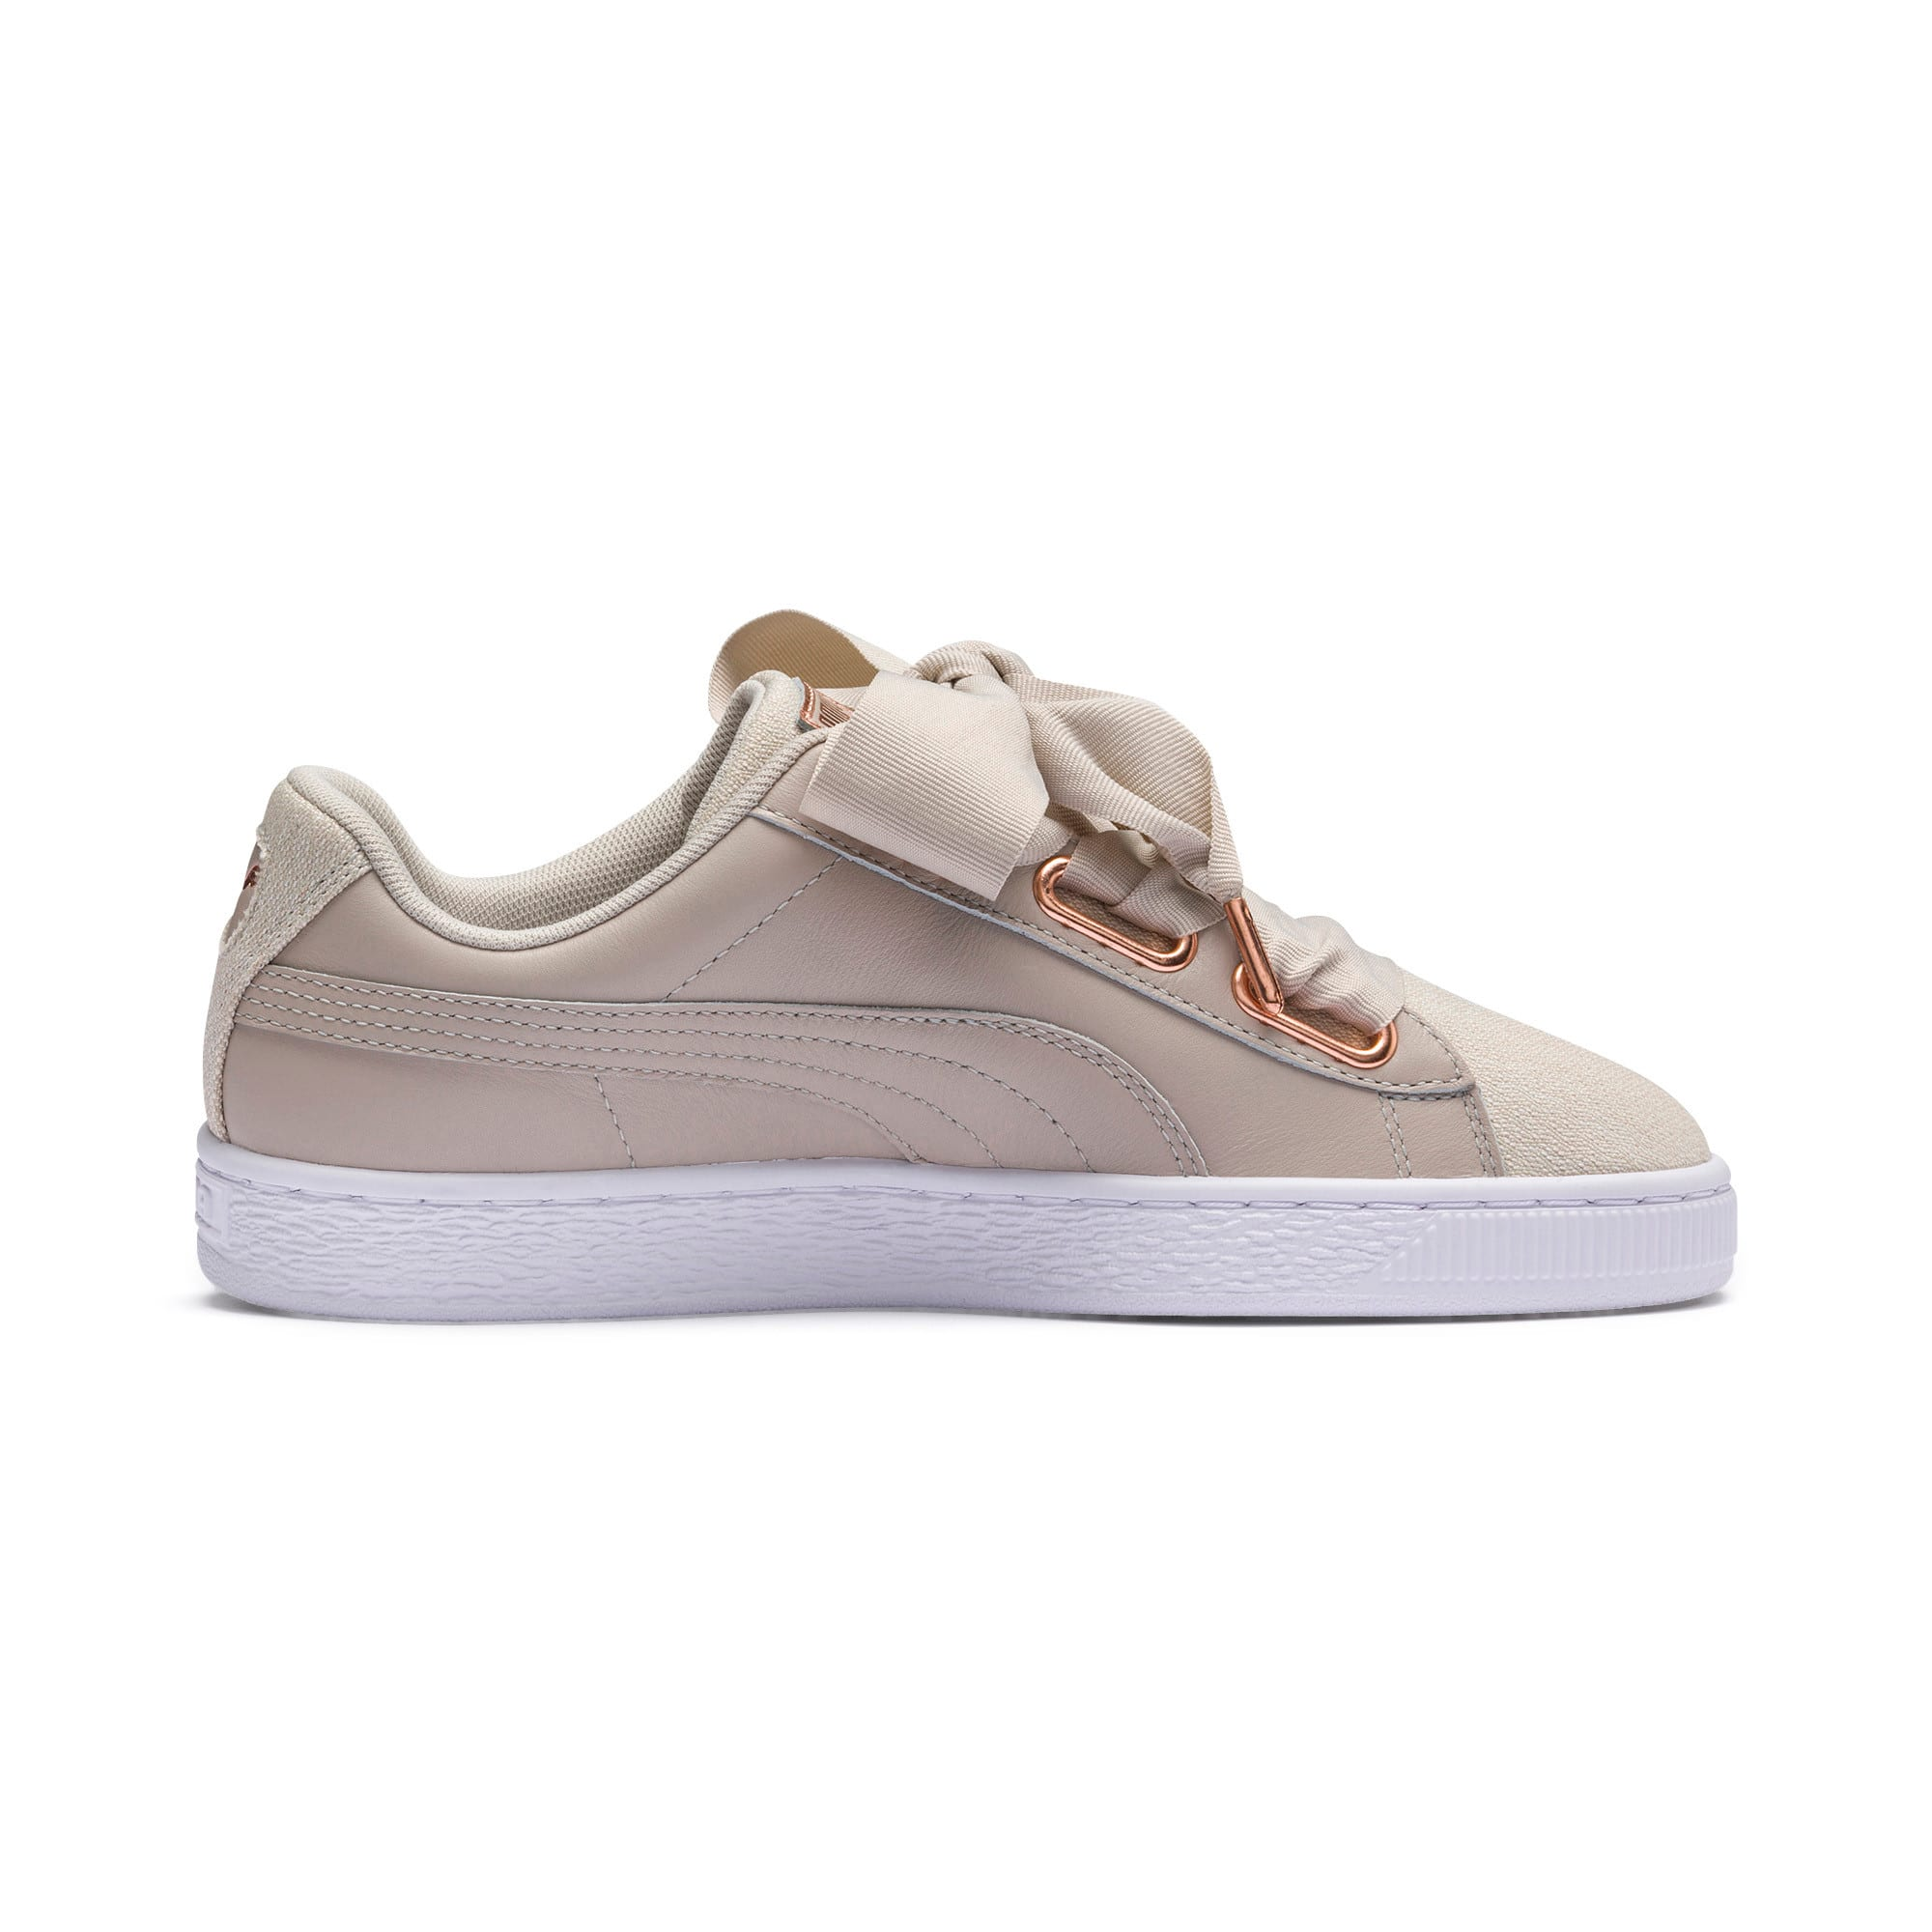 Thumbnail 5 of Basket Heart Woven Rose Women's Sneakers, Silver Gray-Puma White, medium